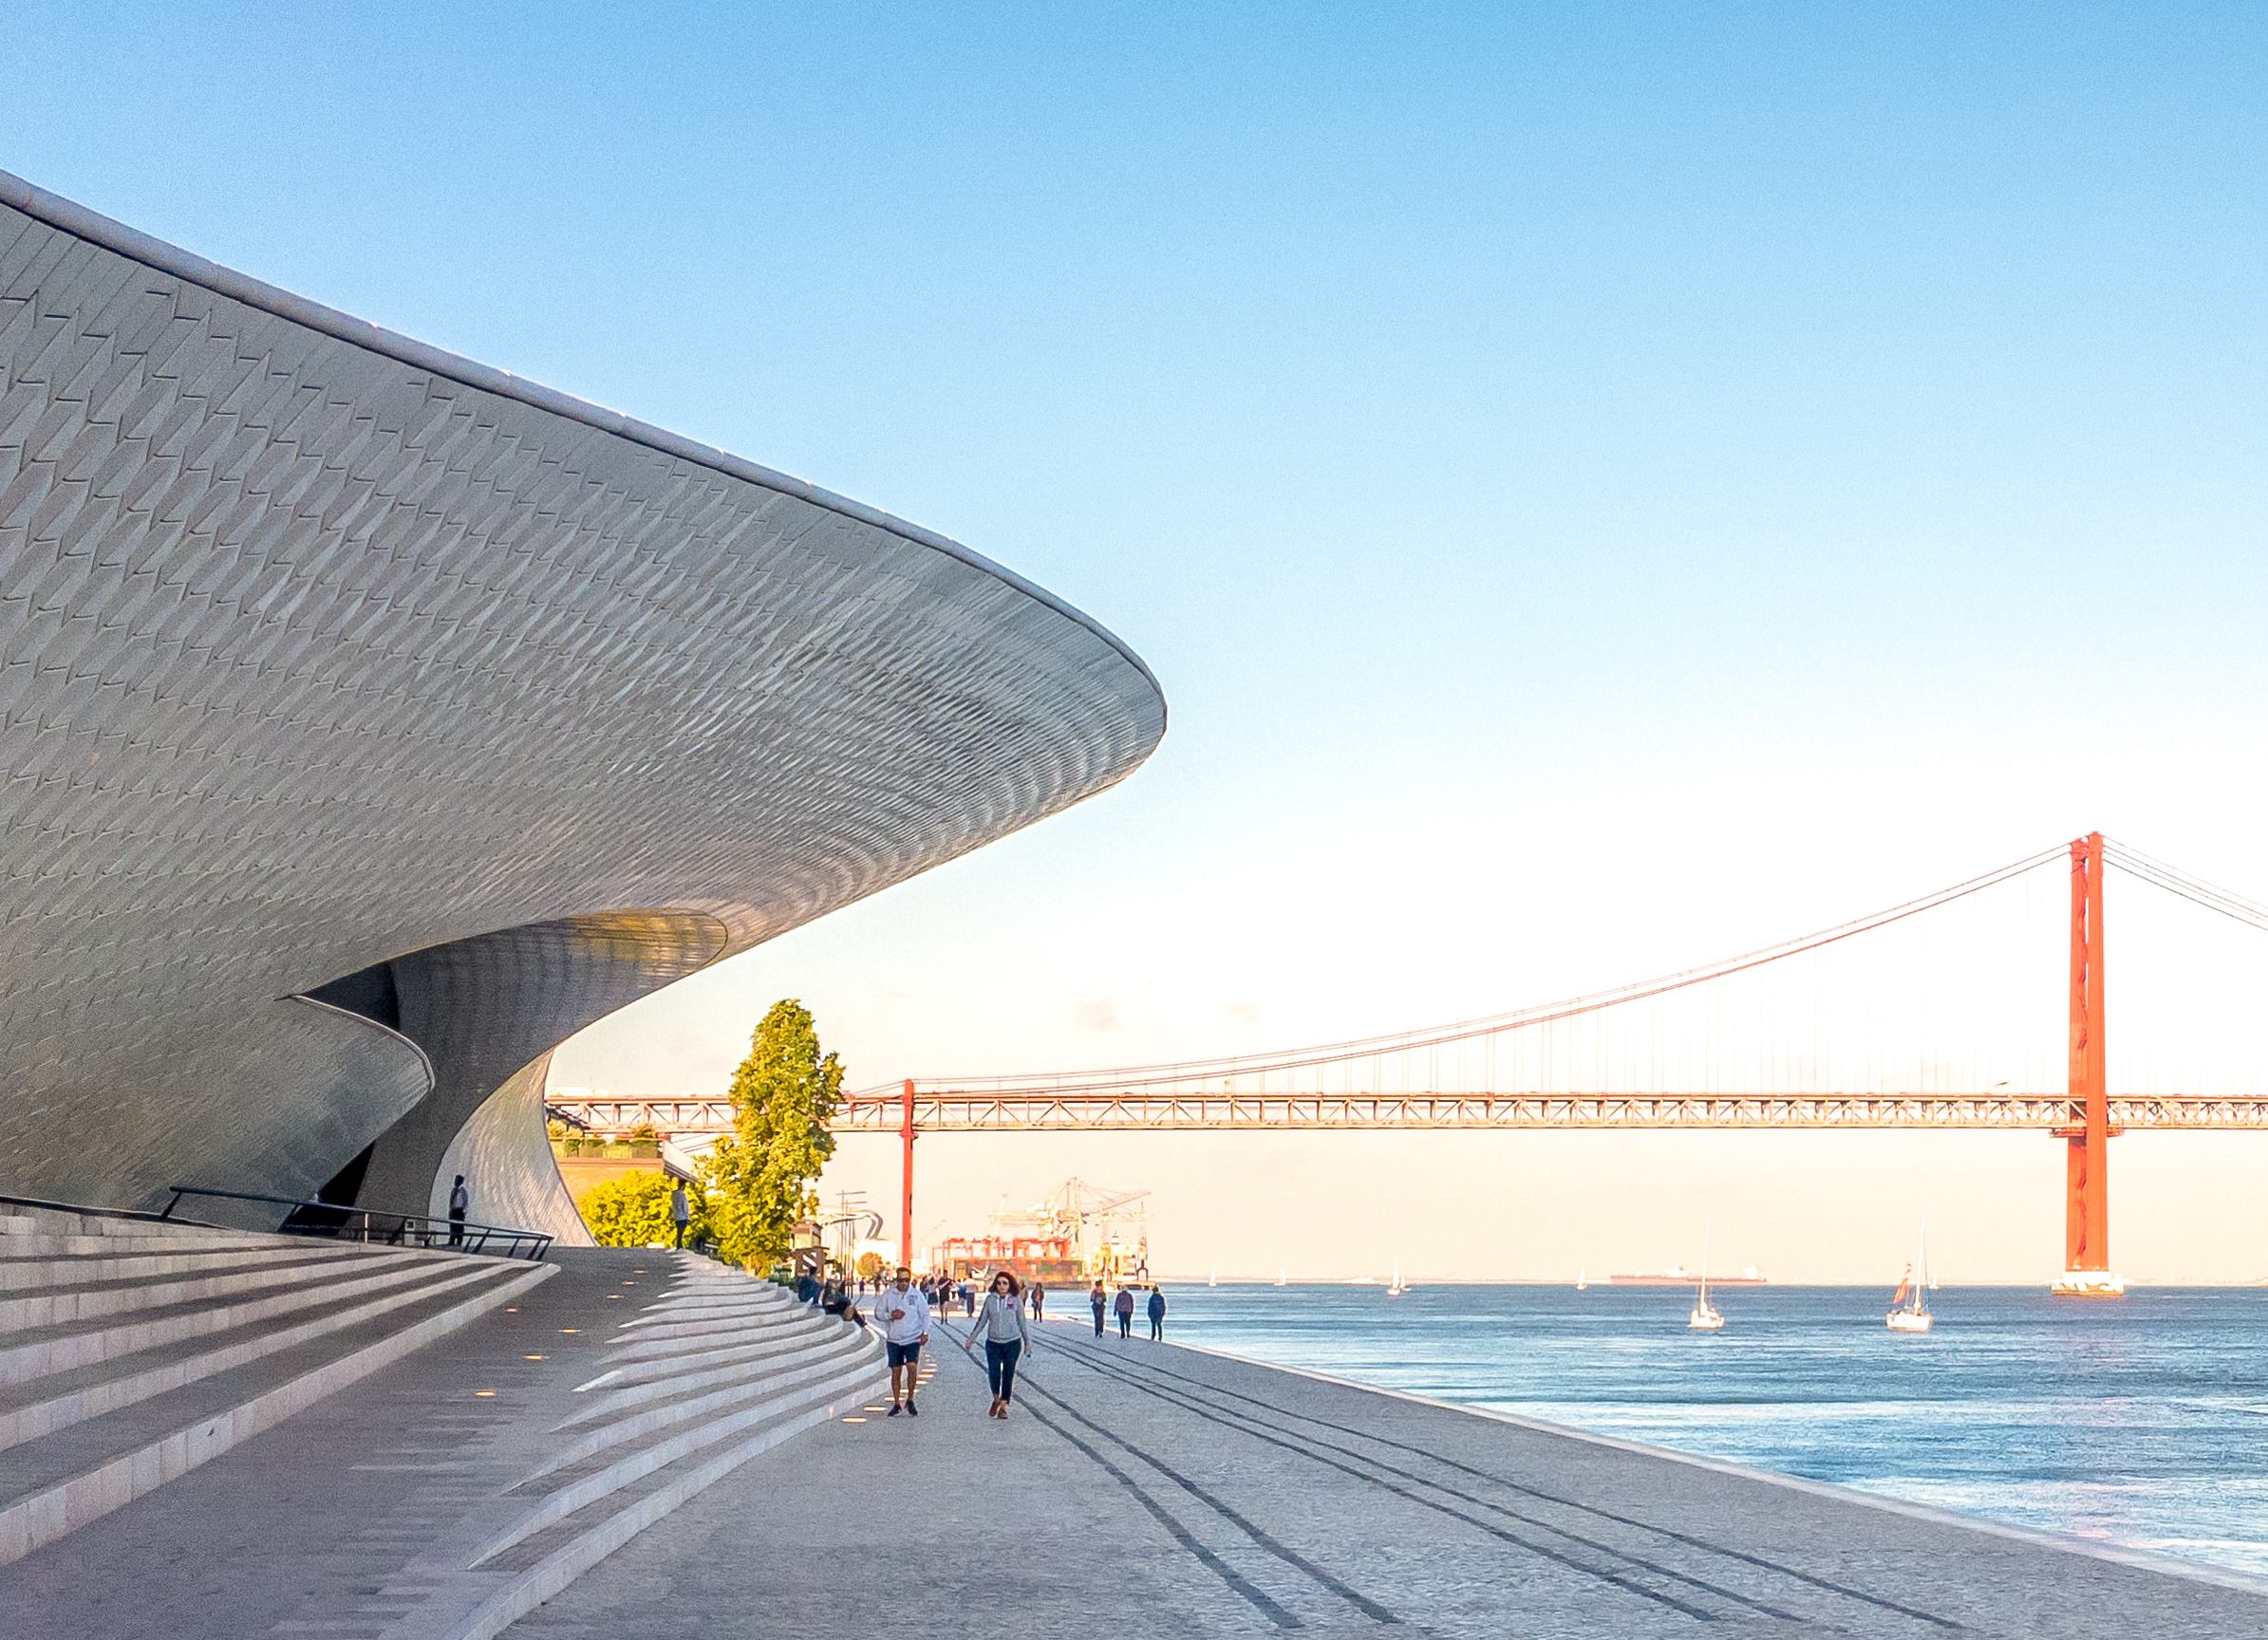 MAAT - Museum of Art, Architecture and Technology, Lisbon, Portugal